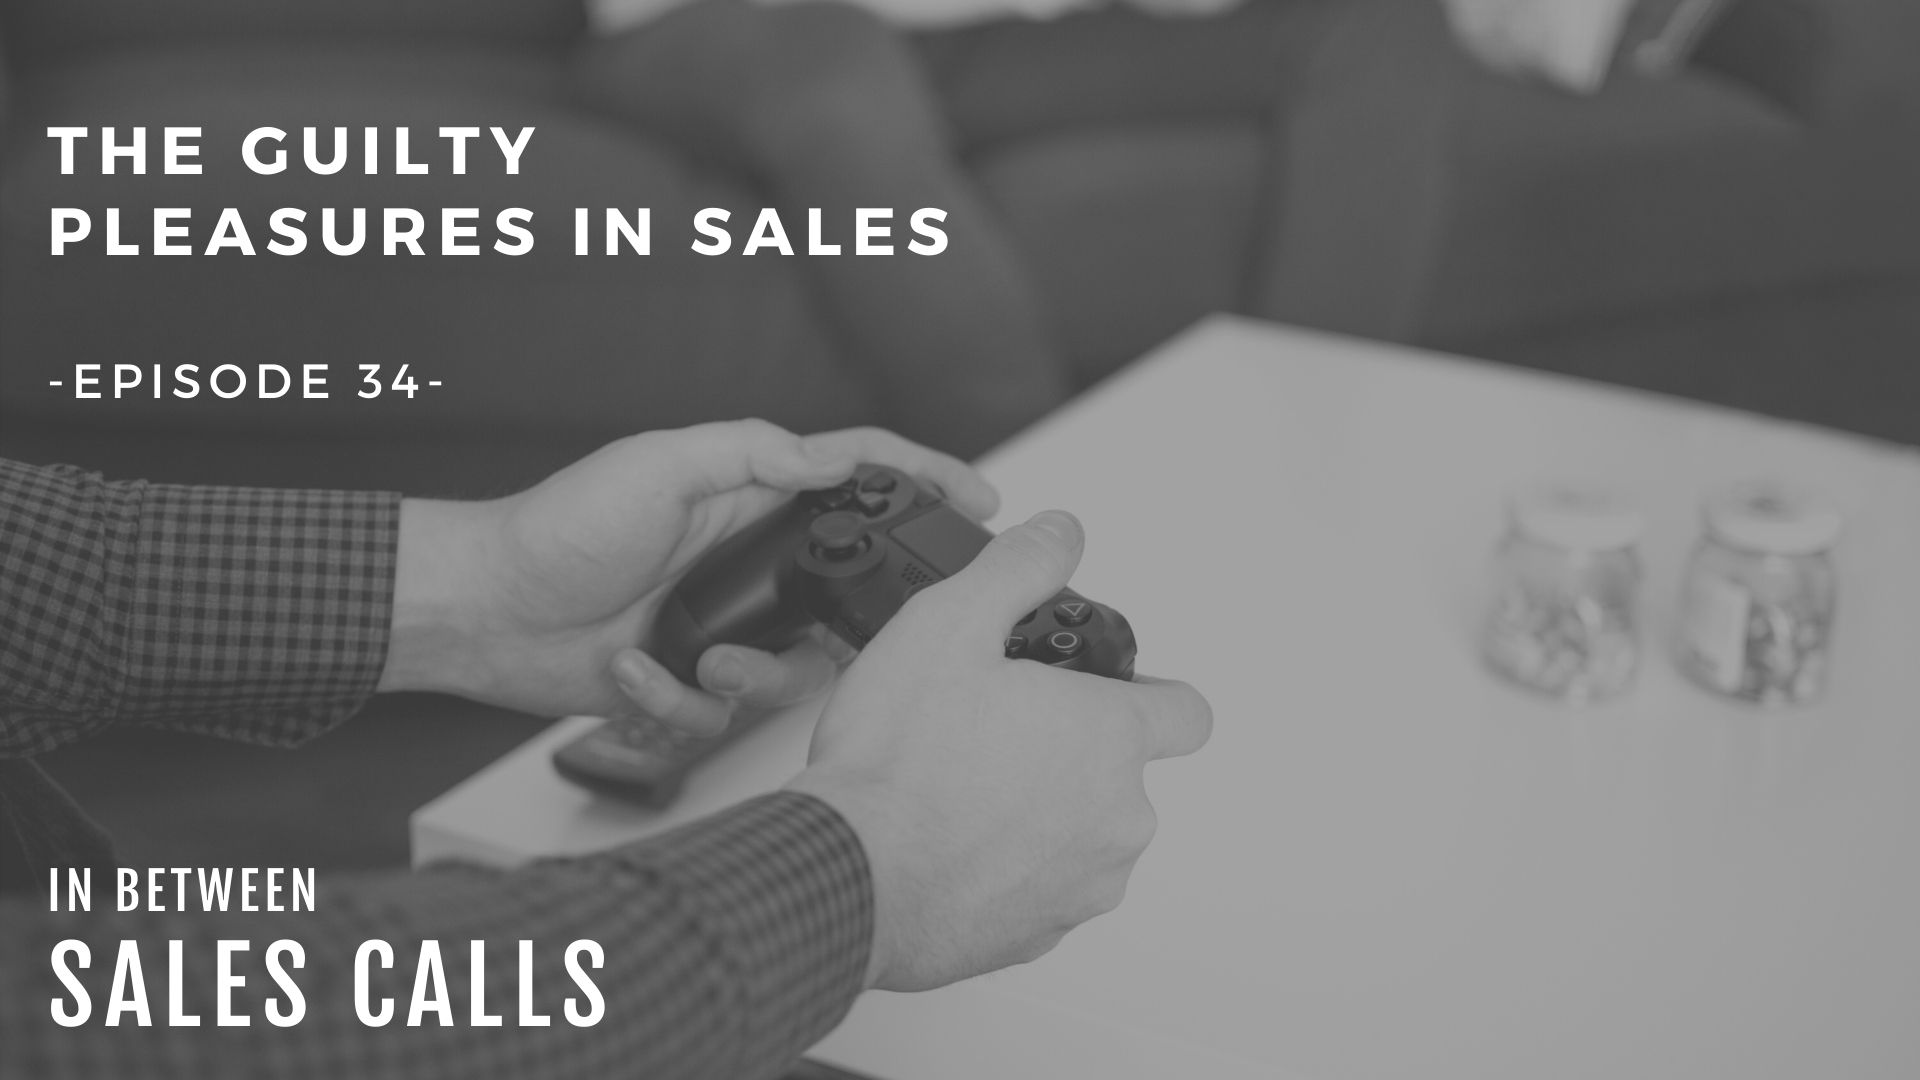 the-guilty-pleasures-in-sales-modern-sales-training-in-between-sales-calls-podcast